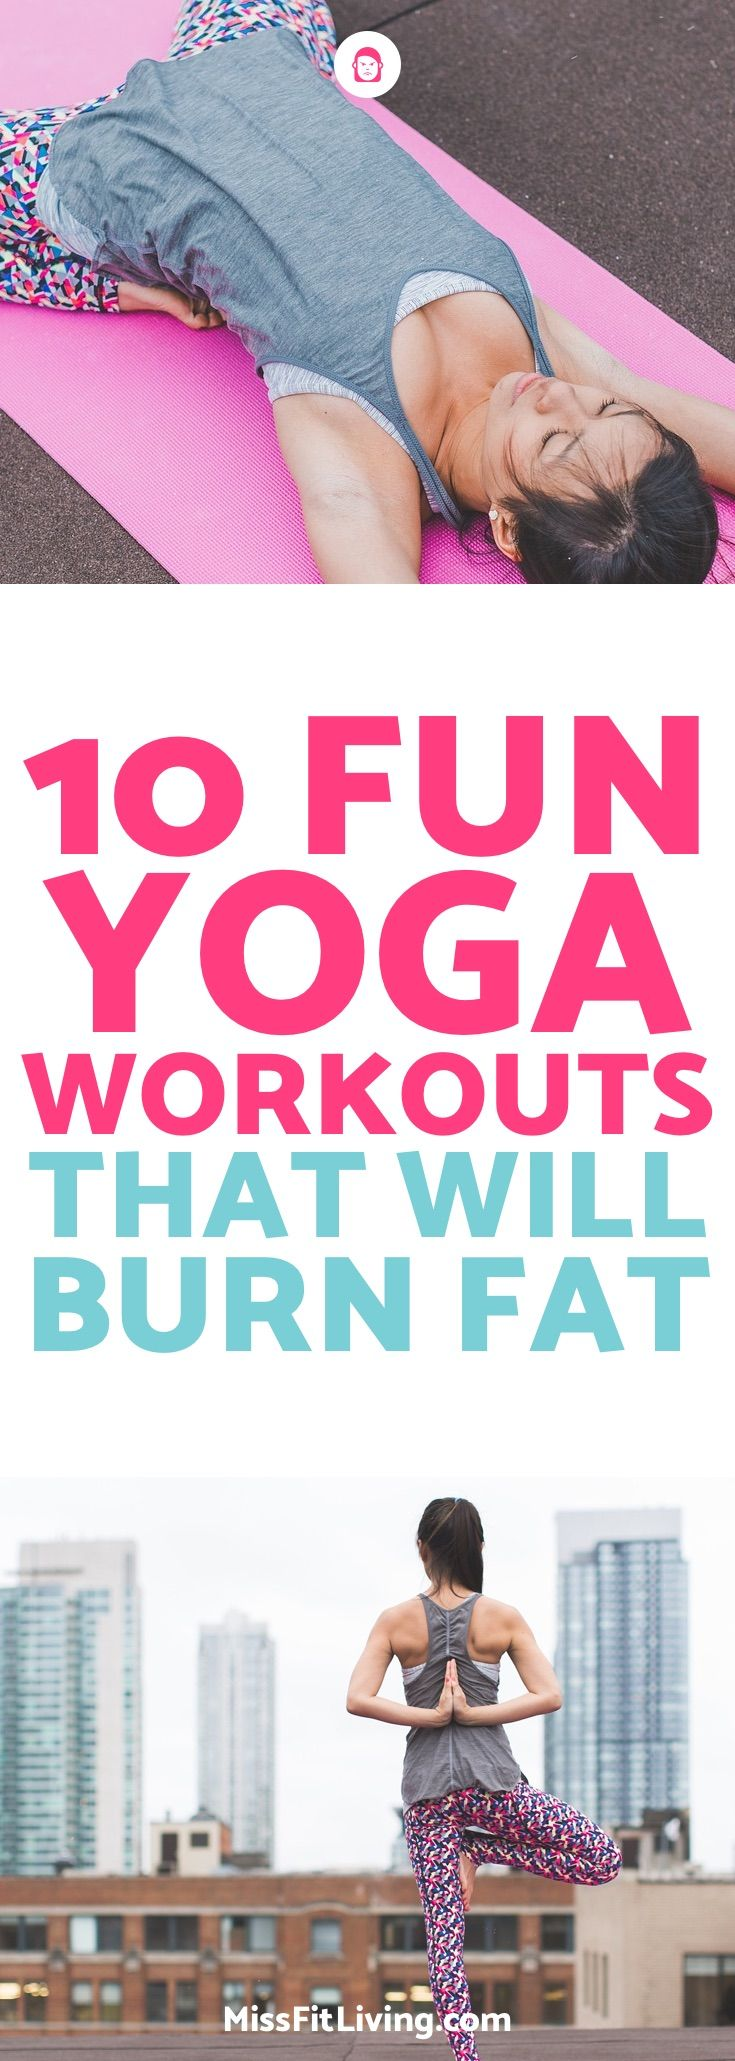 Looking to lose weight? You should give yoga a shot. Here are 10 yoga workouts t...